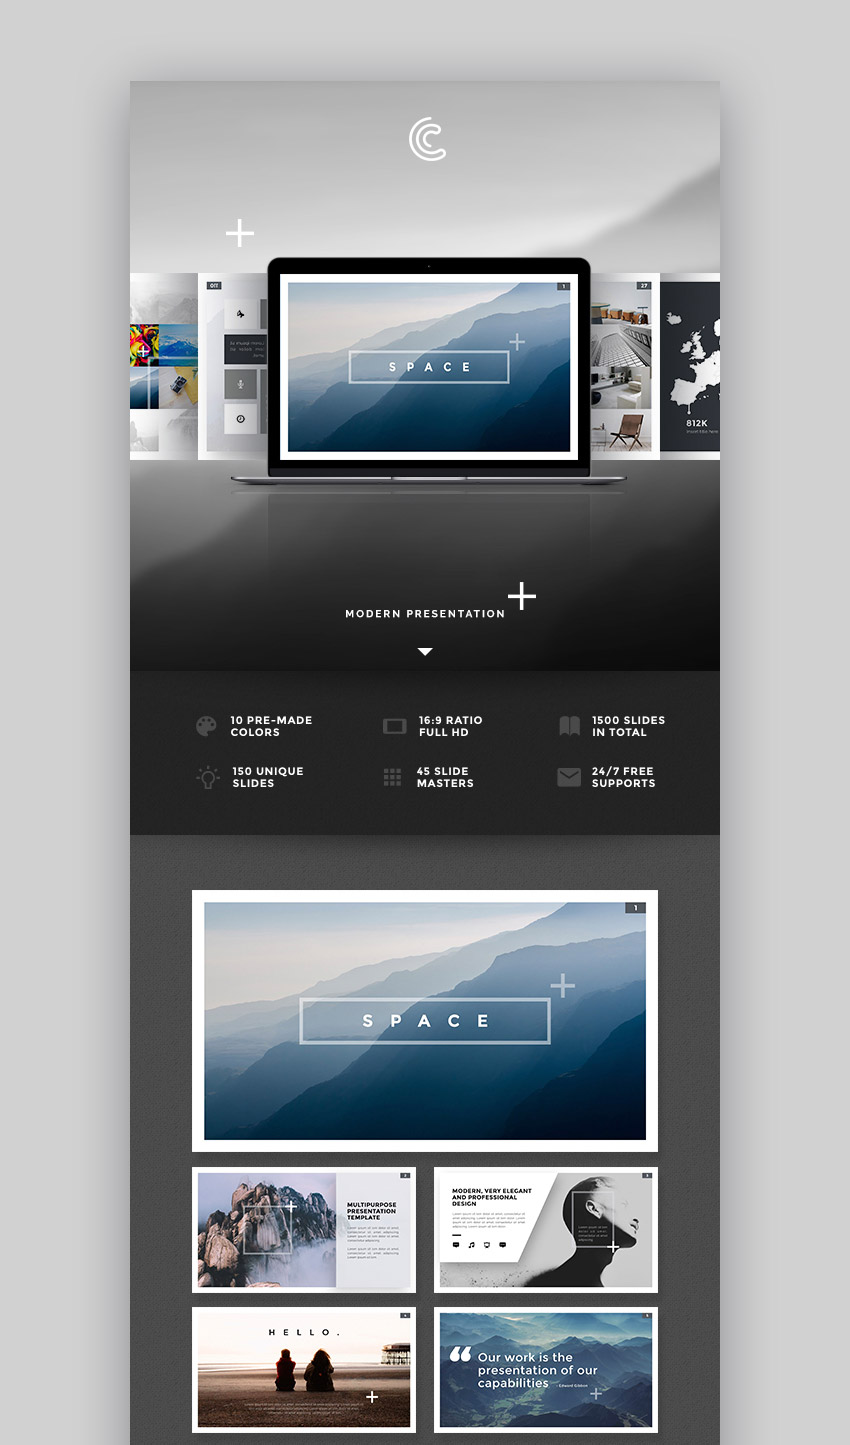 Space Custom Creative Mac Keynote Theme Design